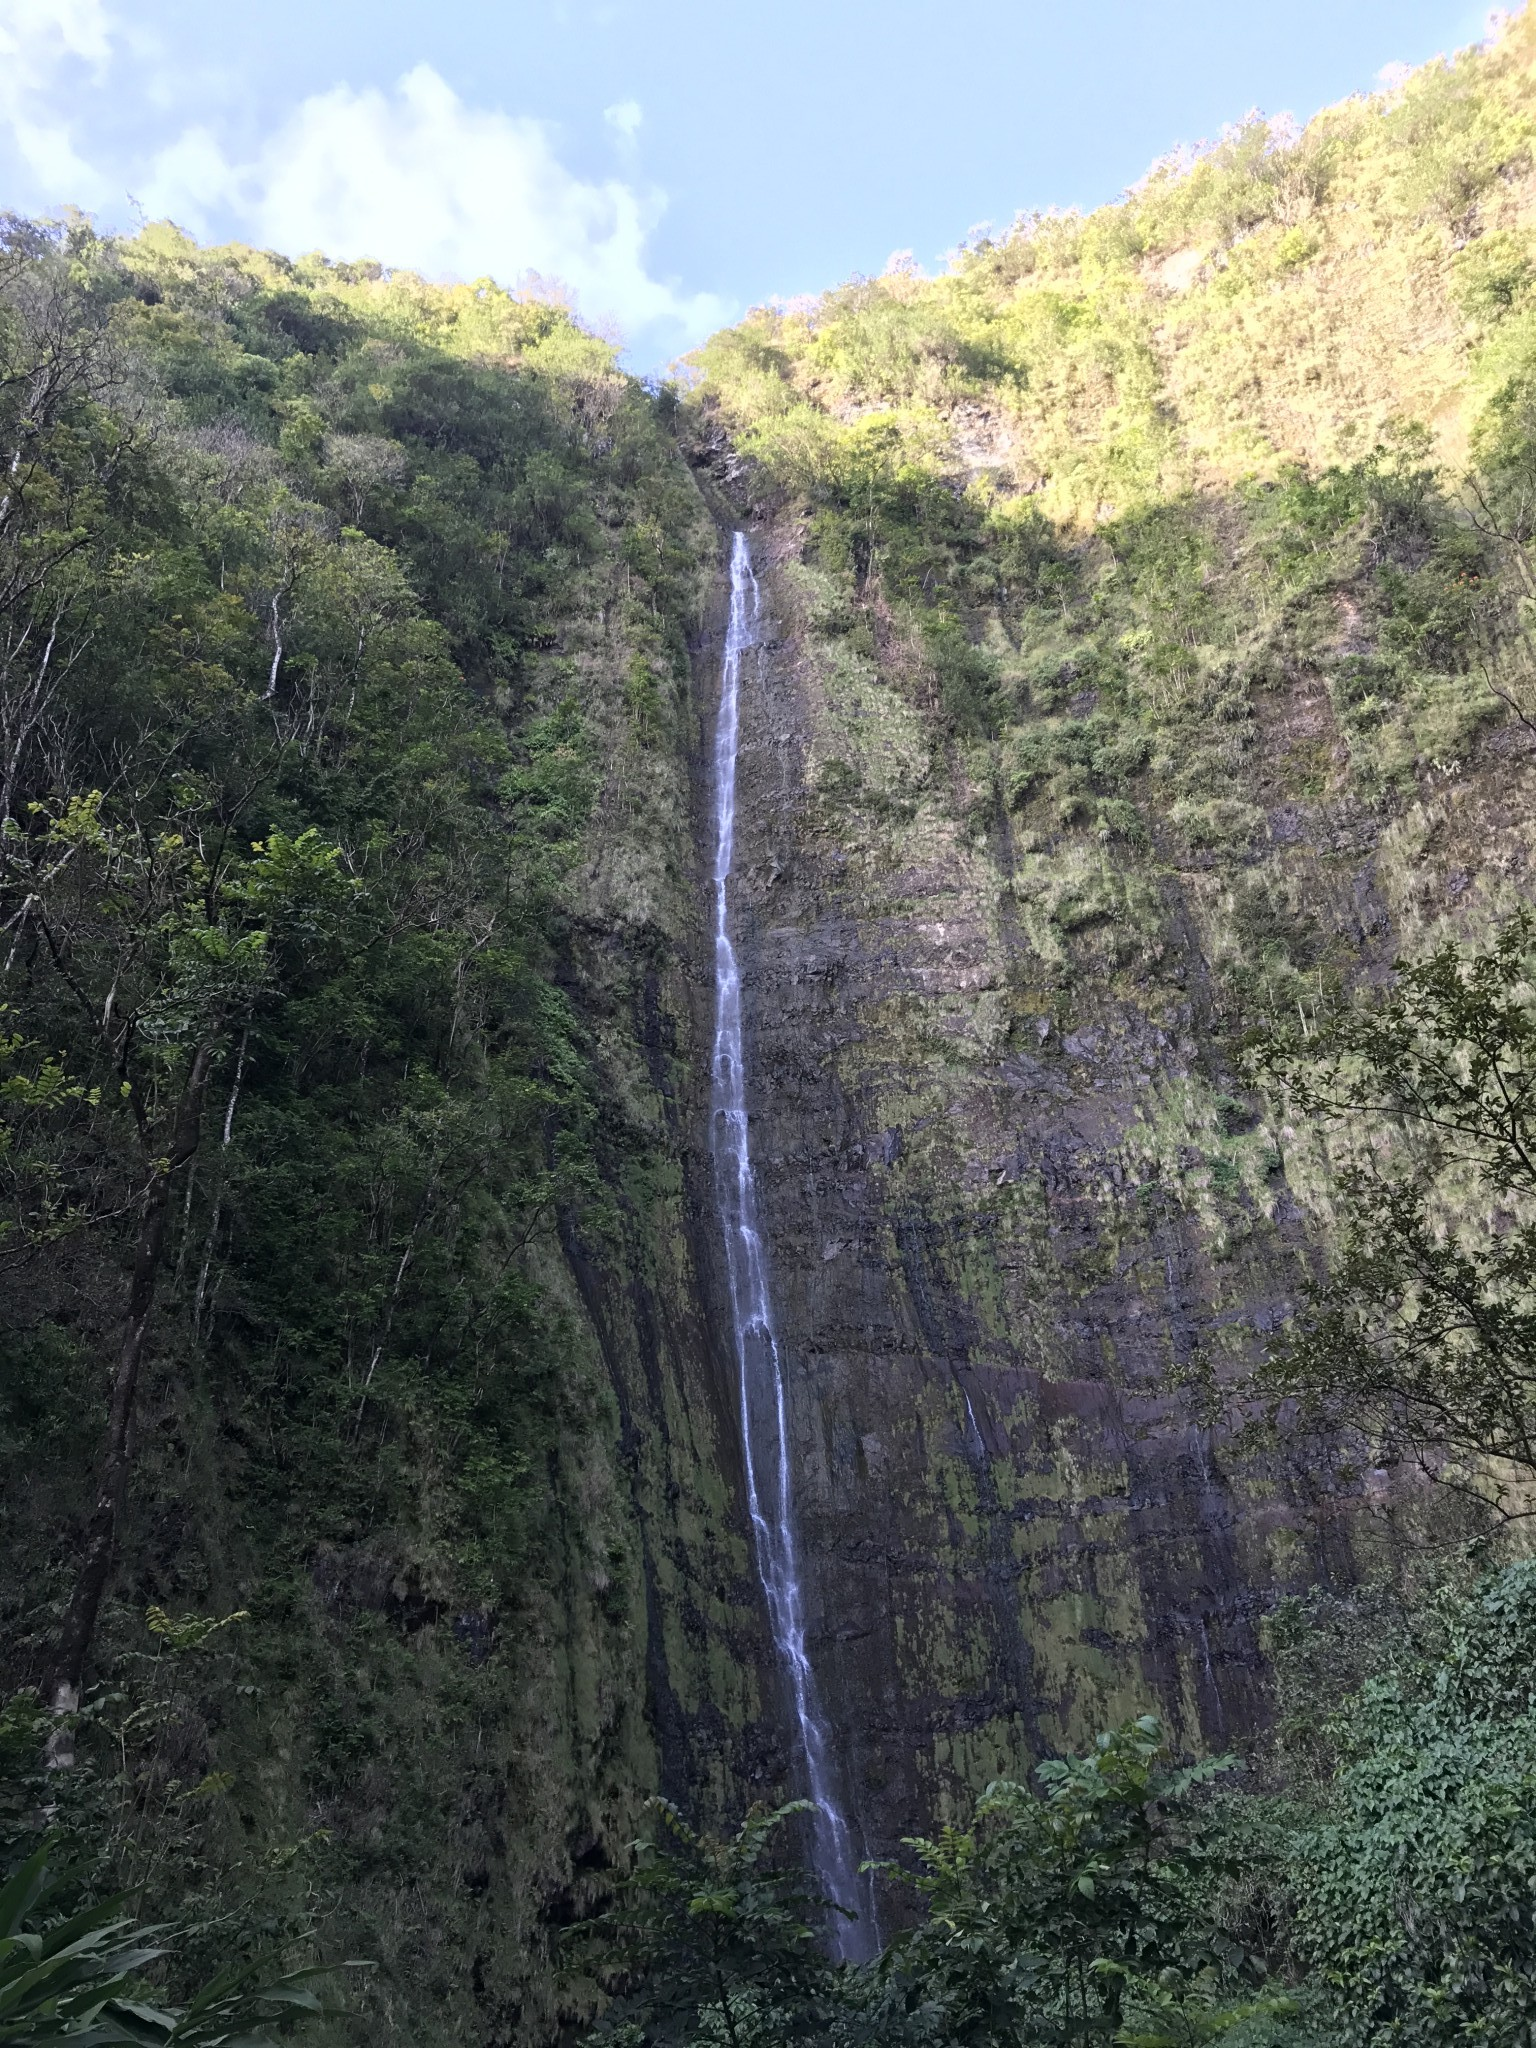 Waimoku Falls, road to hana, haleakala national park, the-alyst.com